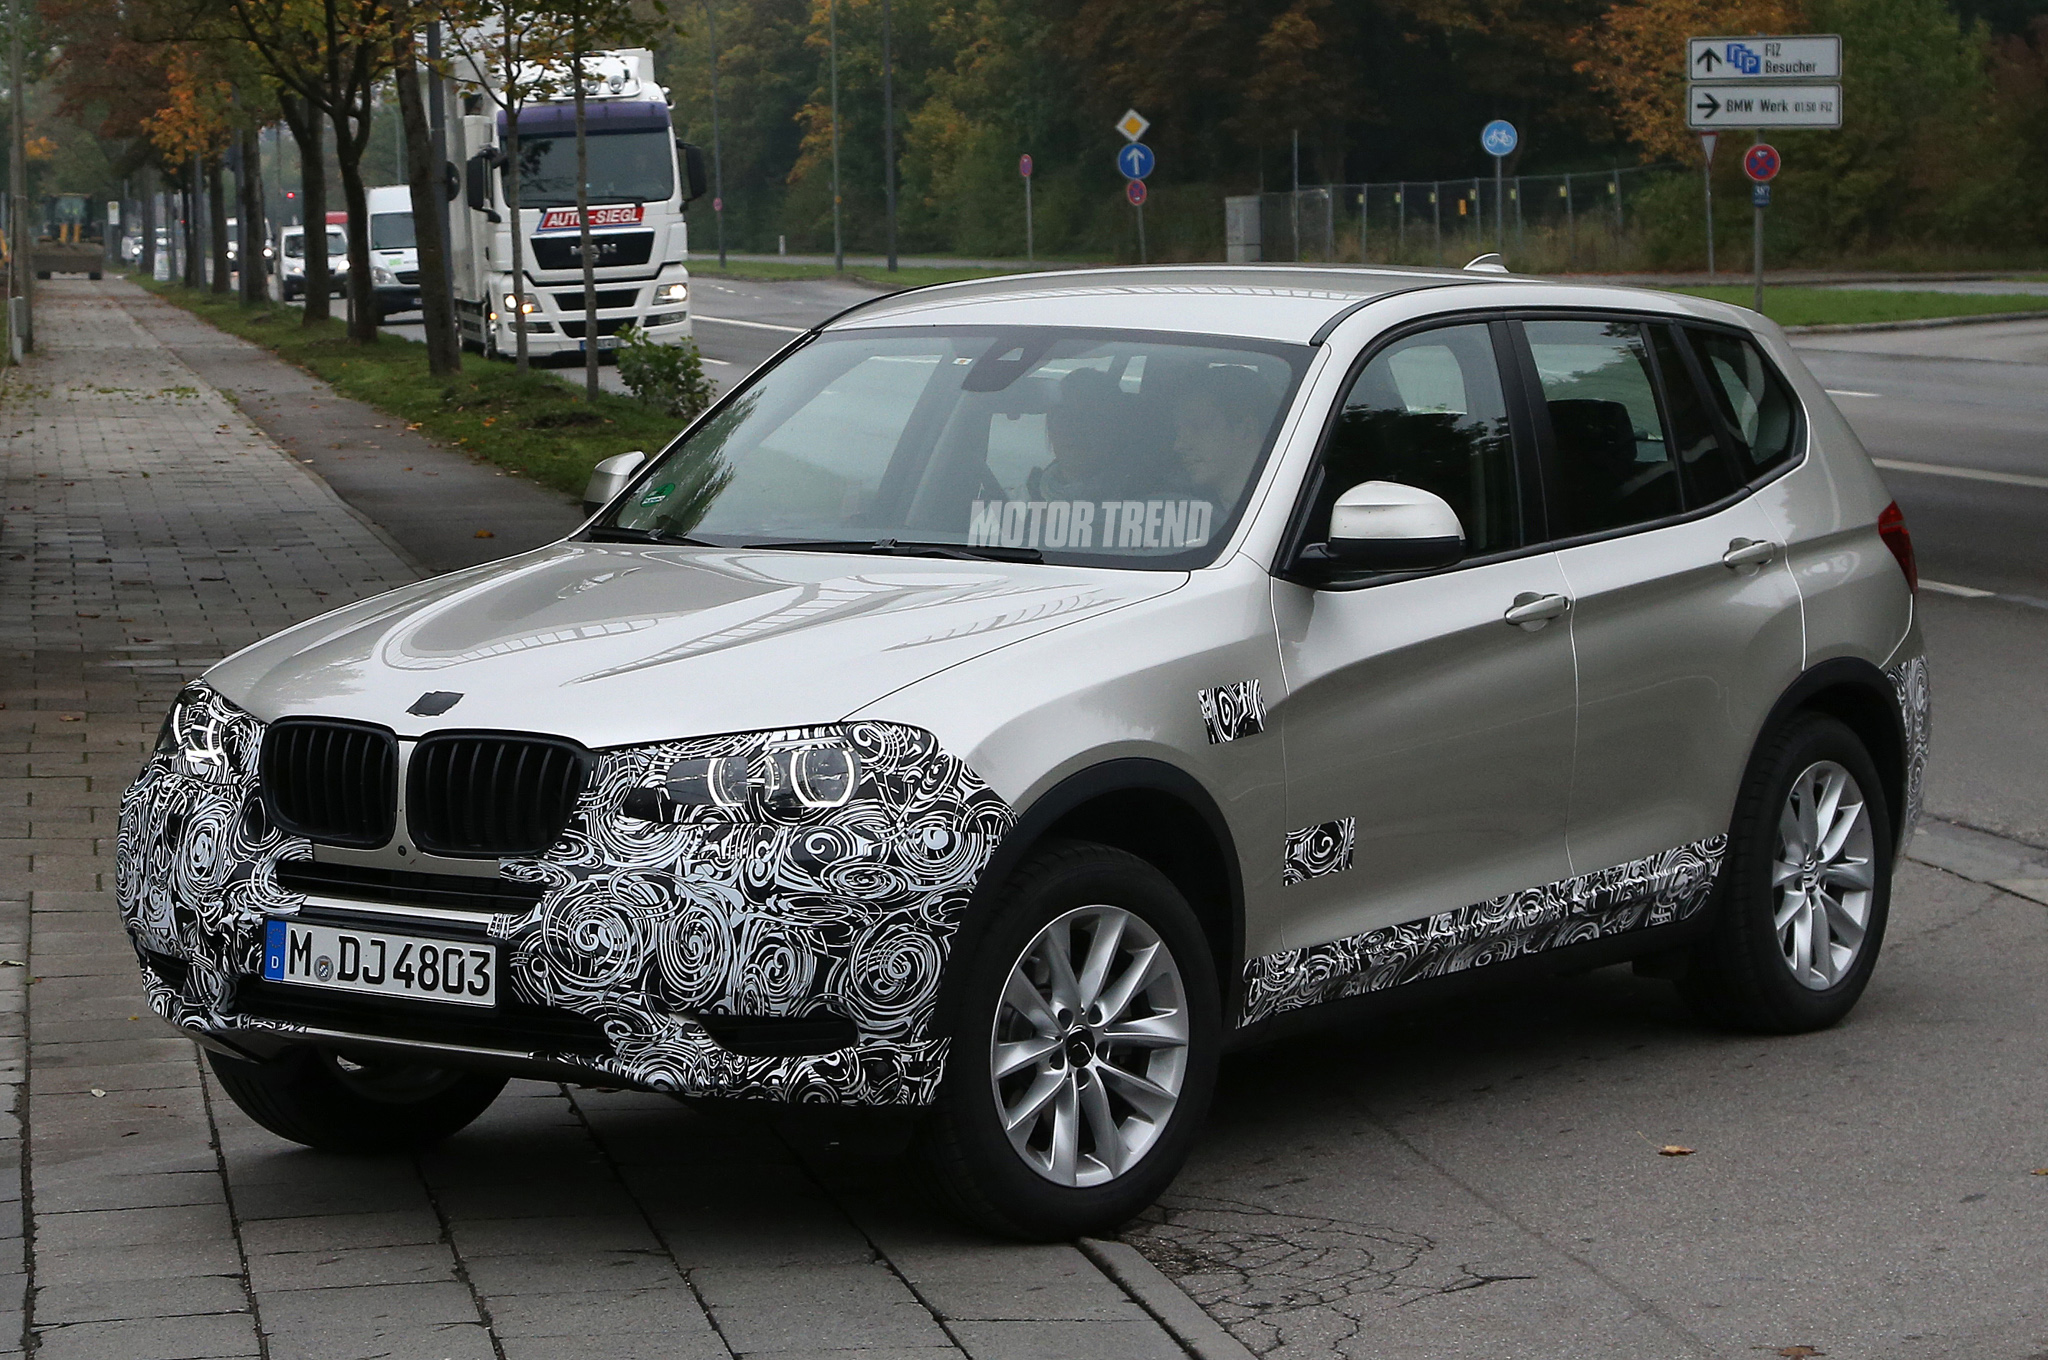 2015 Bmw X3 Reviews Photos Video And Price 2015 Bmw X3